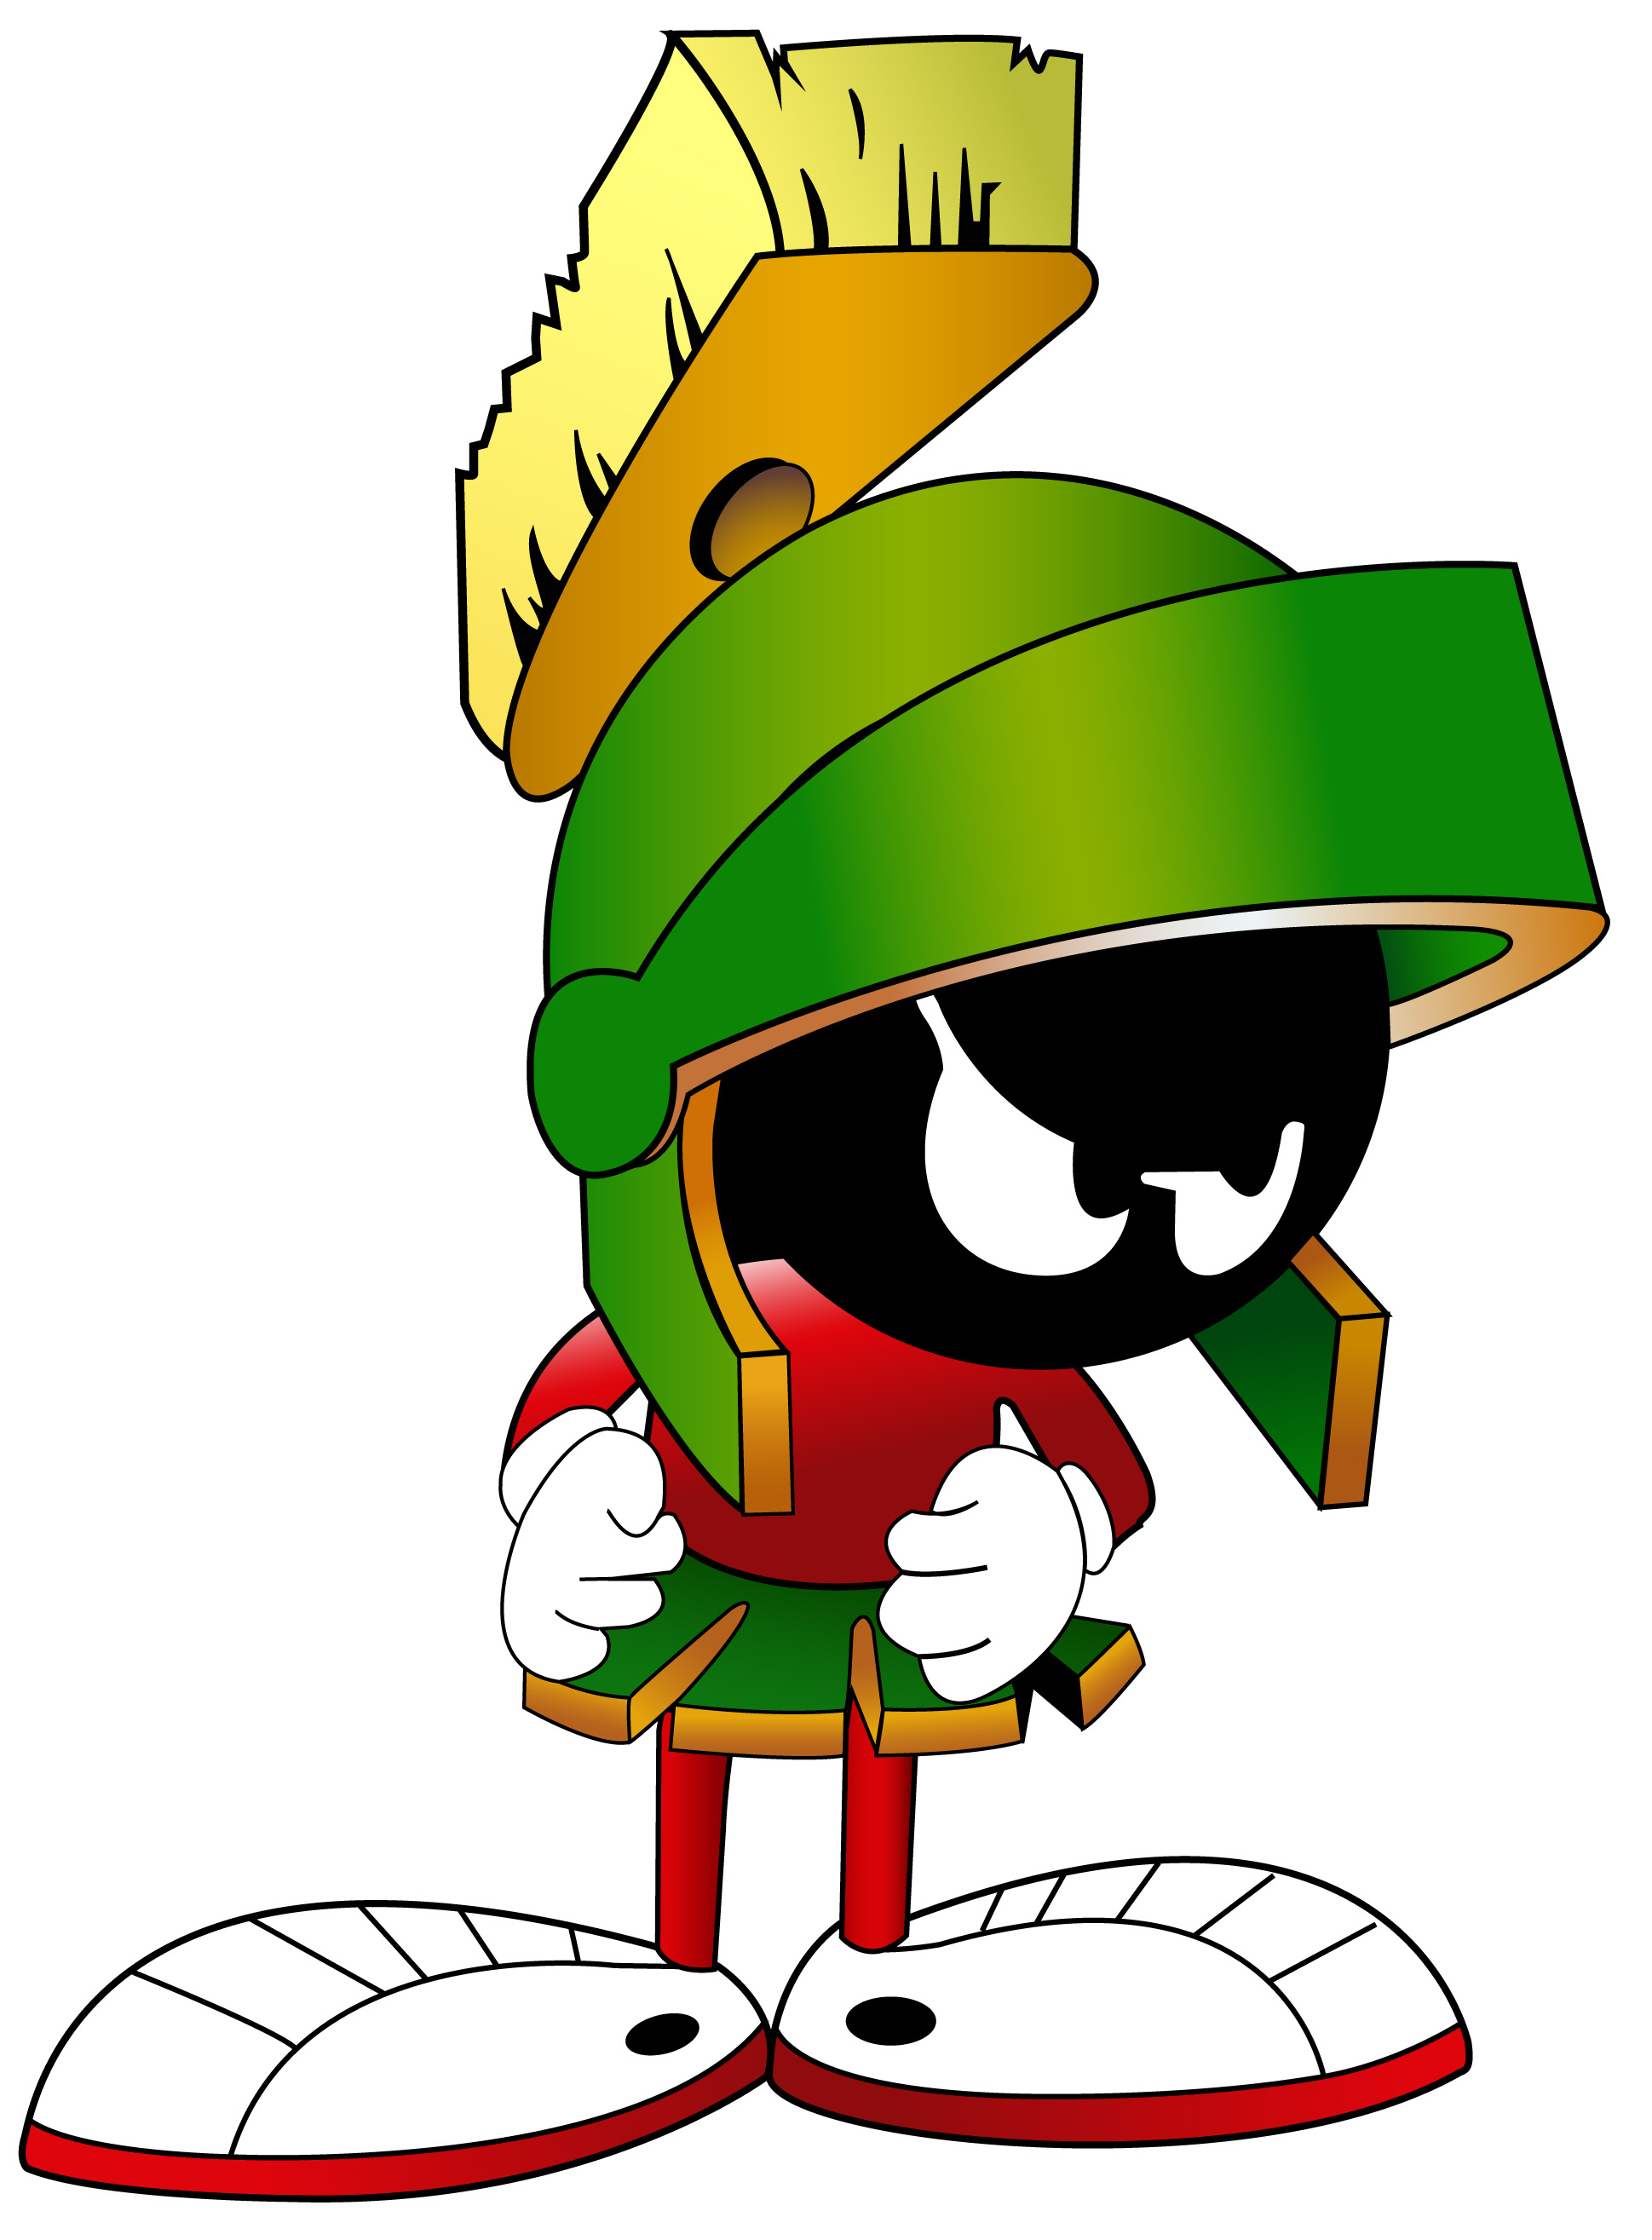 Cartoon Network clipart marvin the martian The Marvin (character) The Marvin